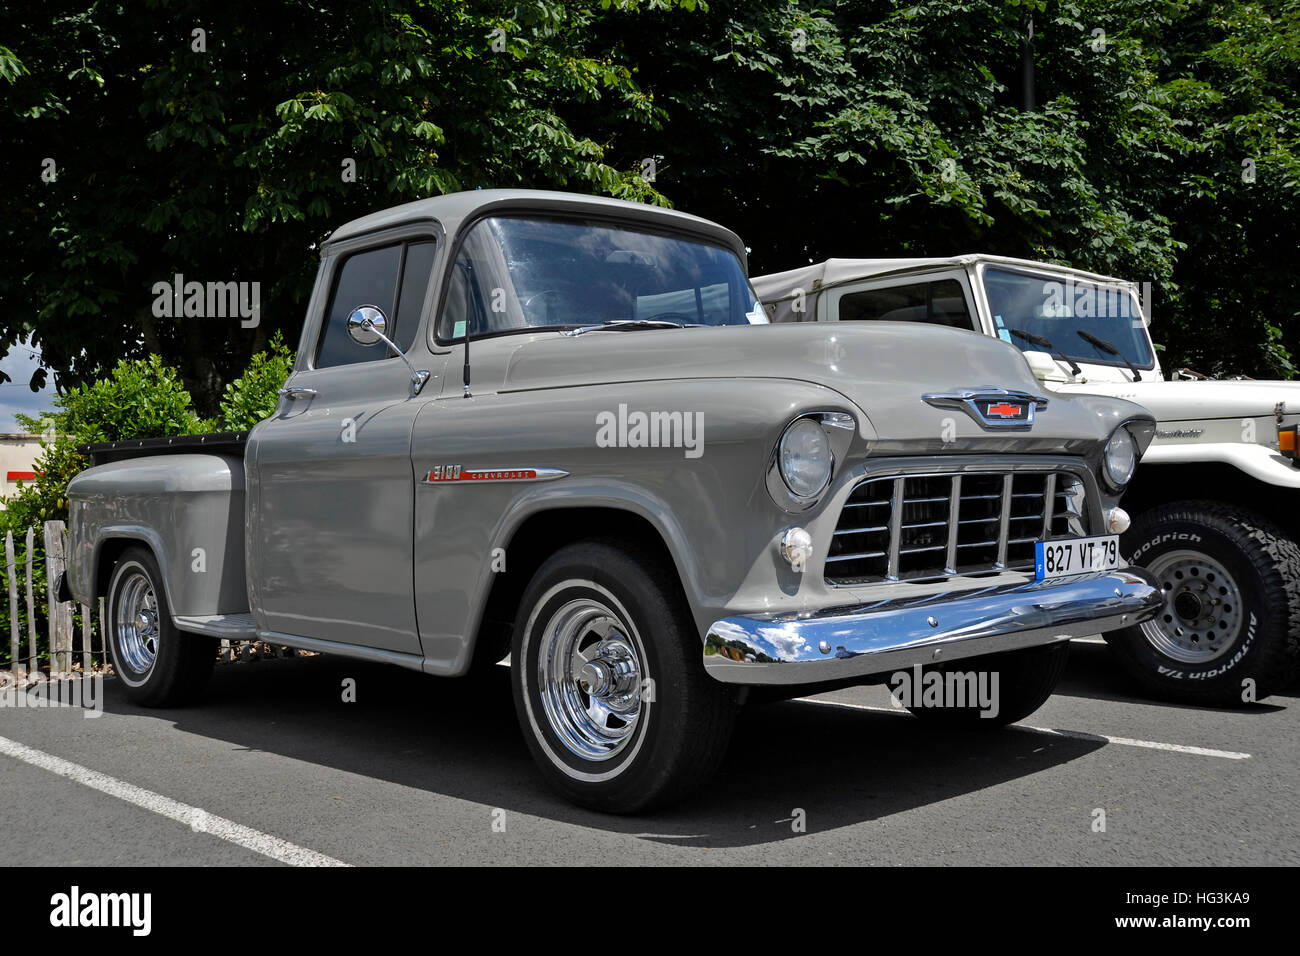 Classic Chevy Pickup Stock Photos & Classic Chevy Pickup Stock ...